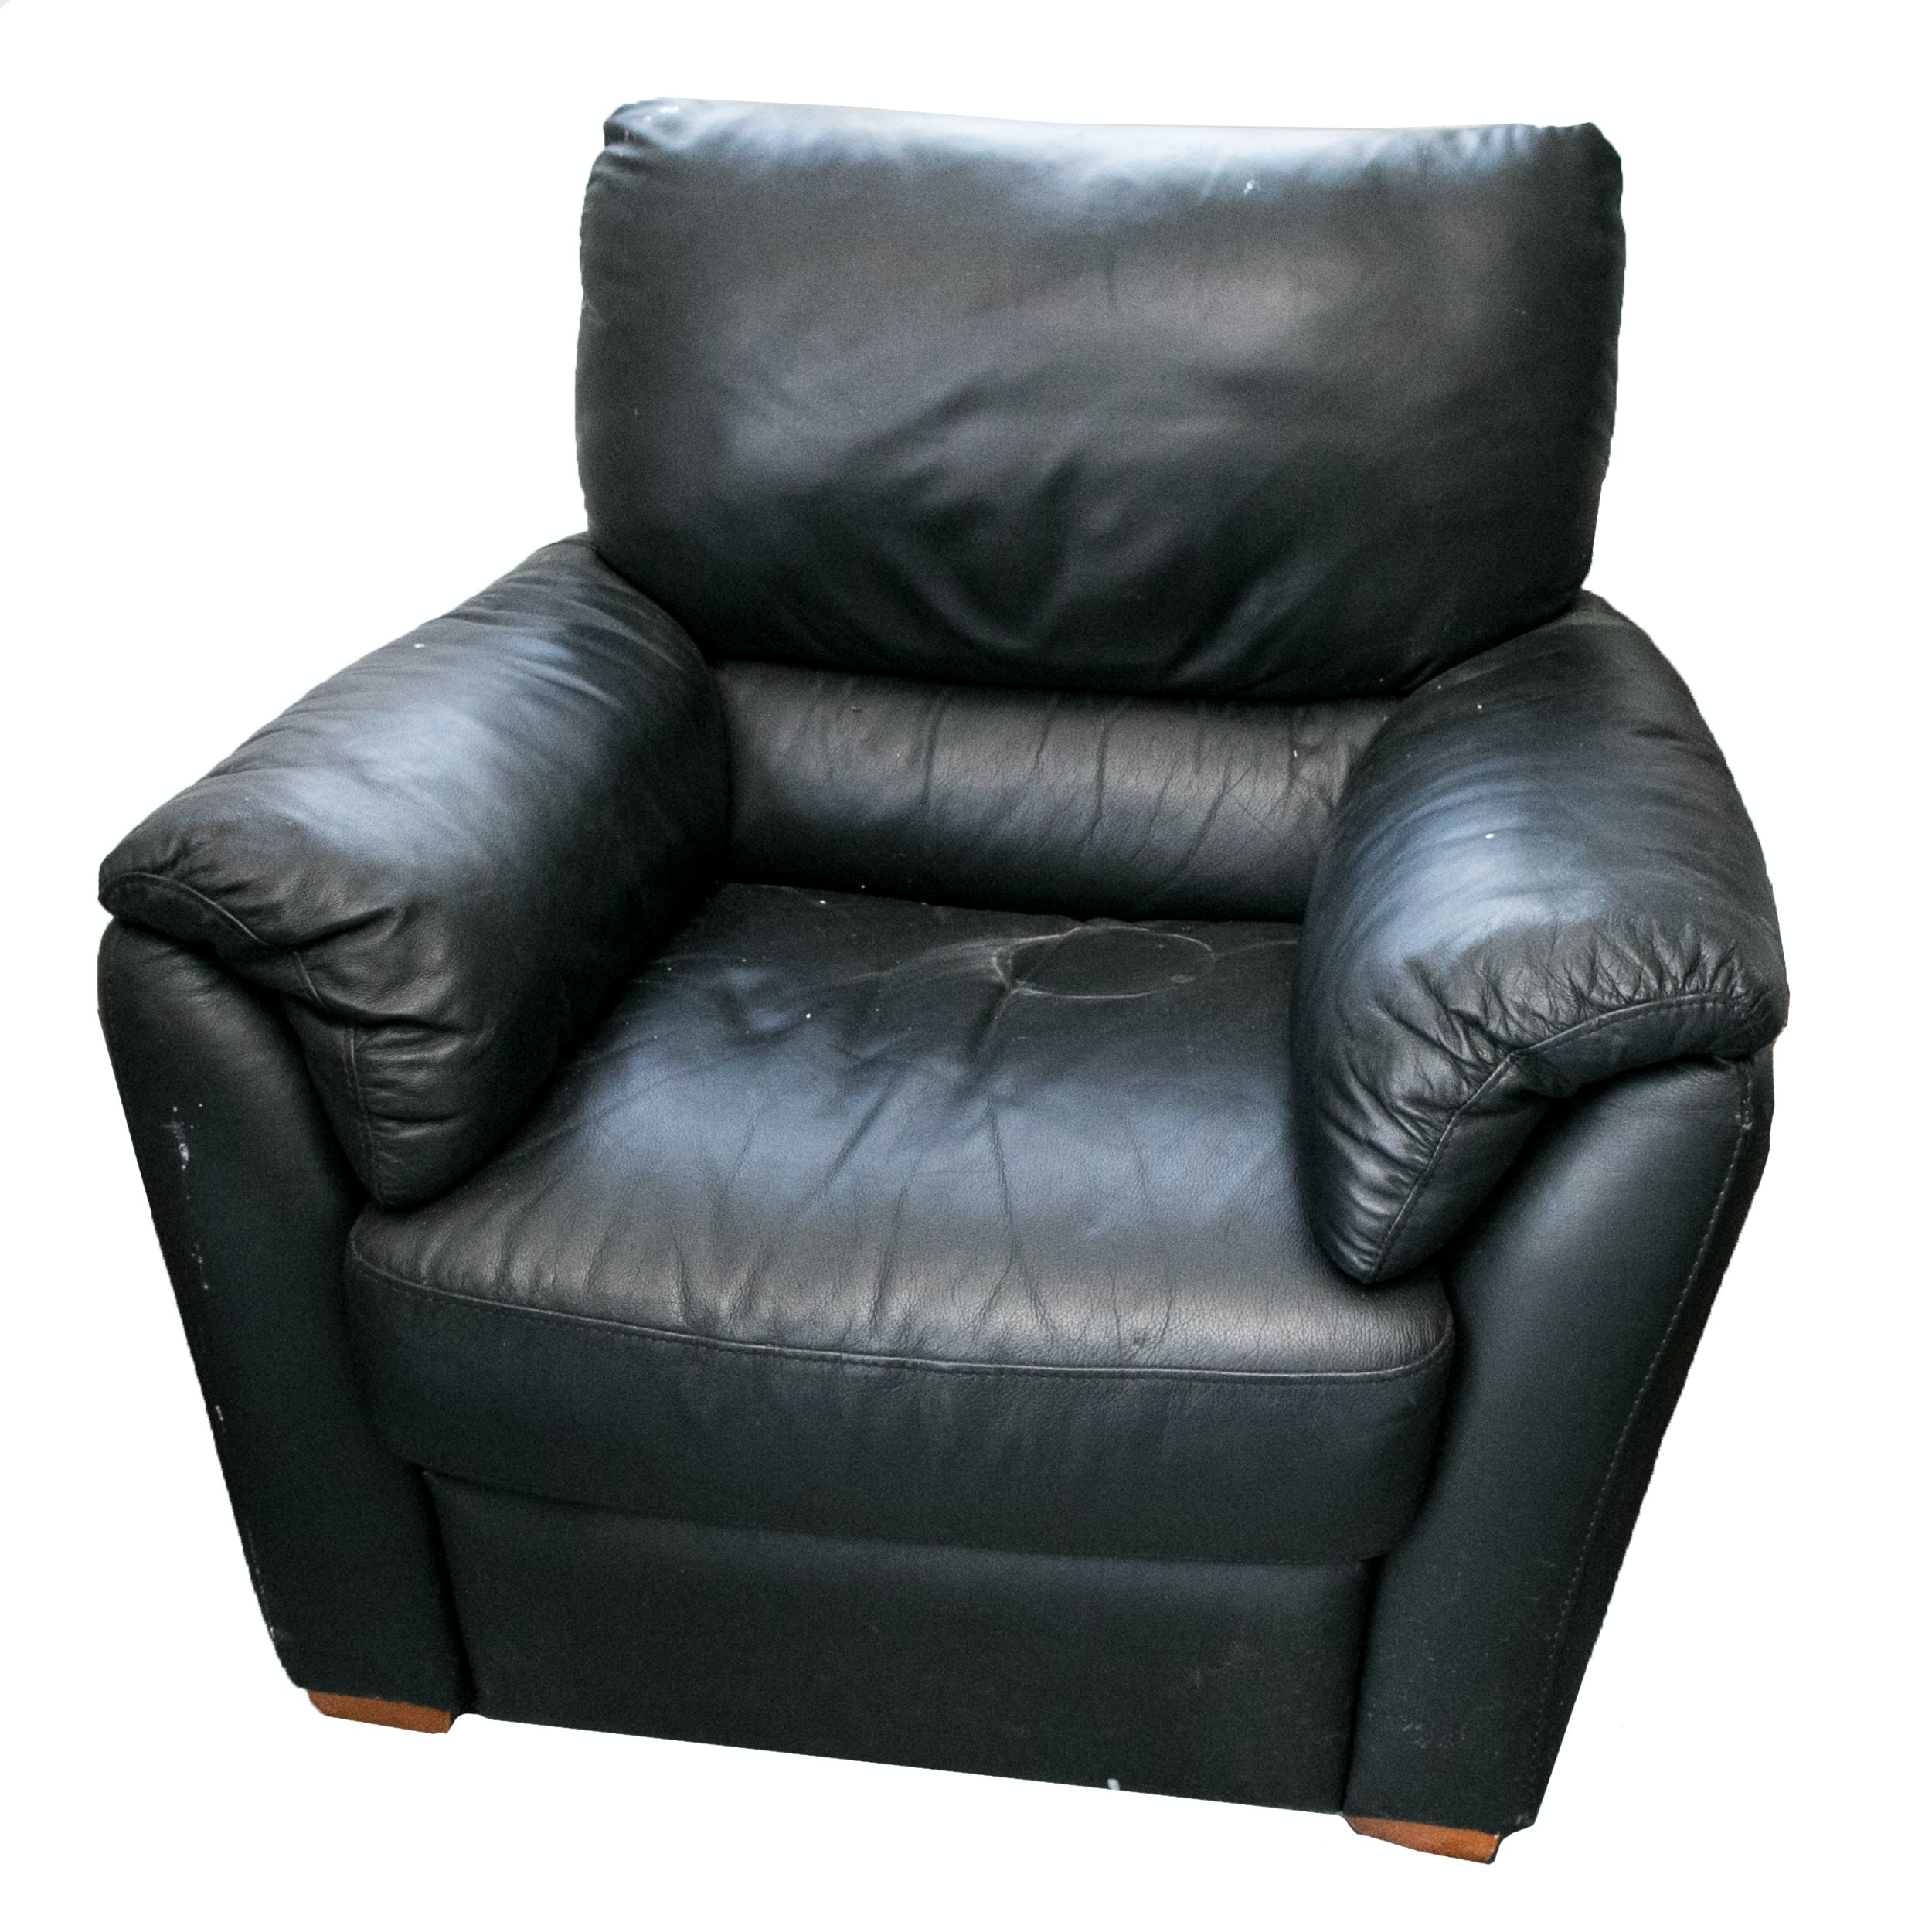 Contemporary Italsofa Black Leather Chair